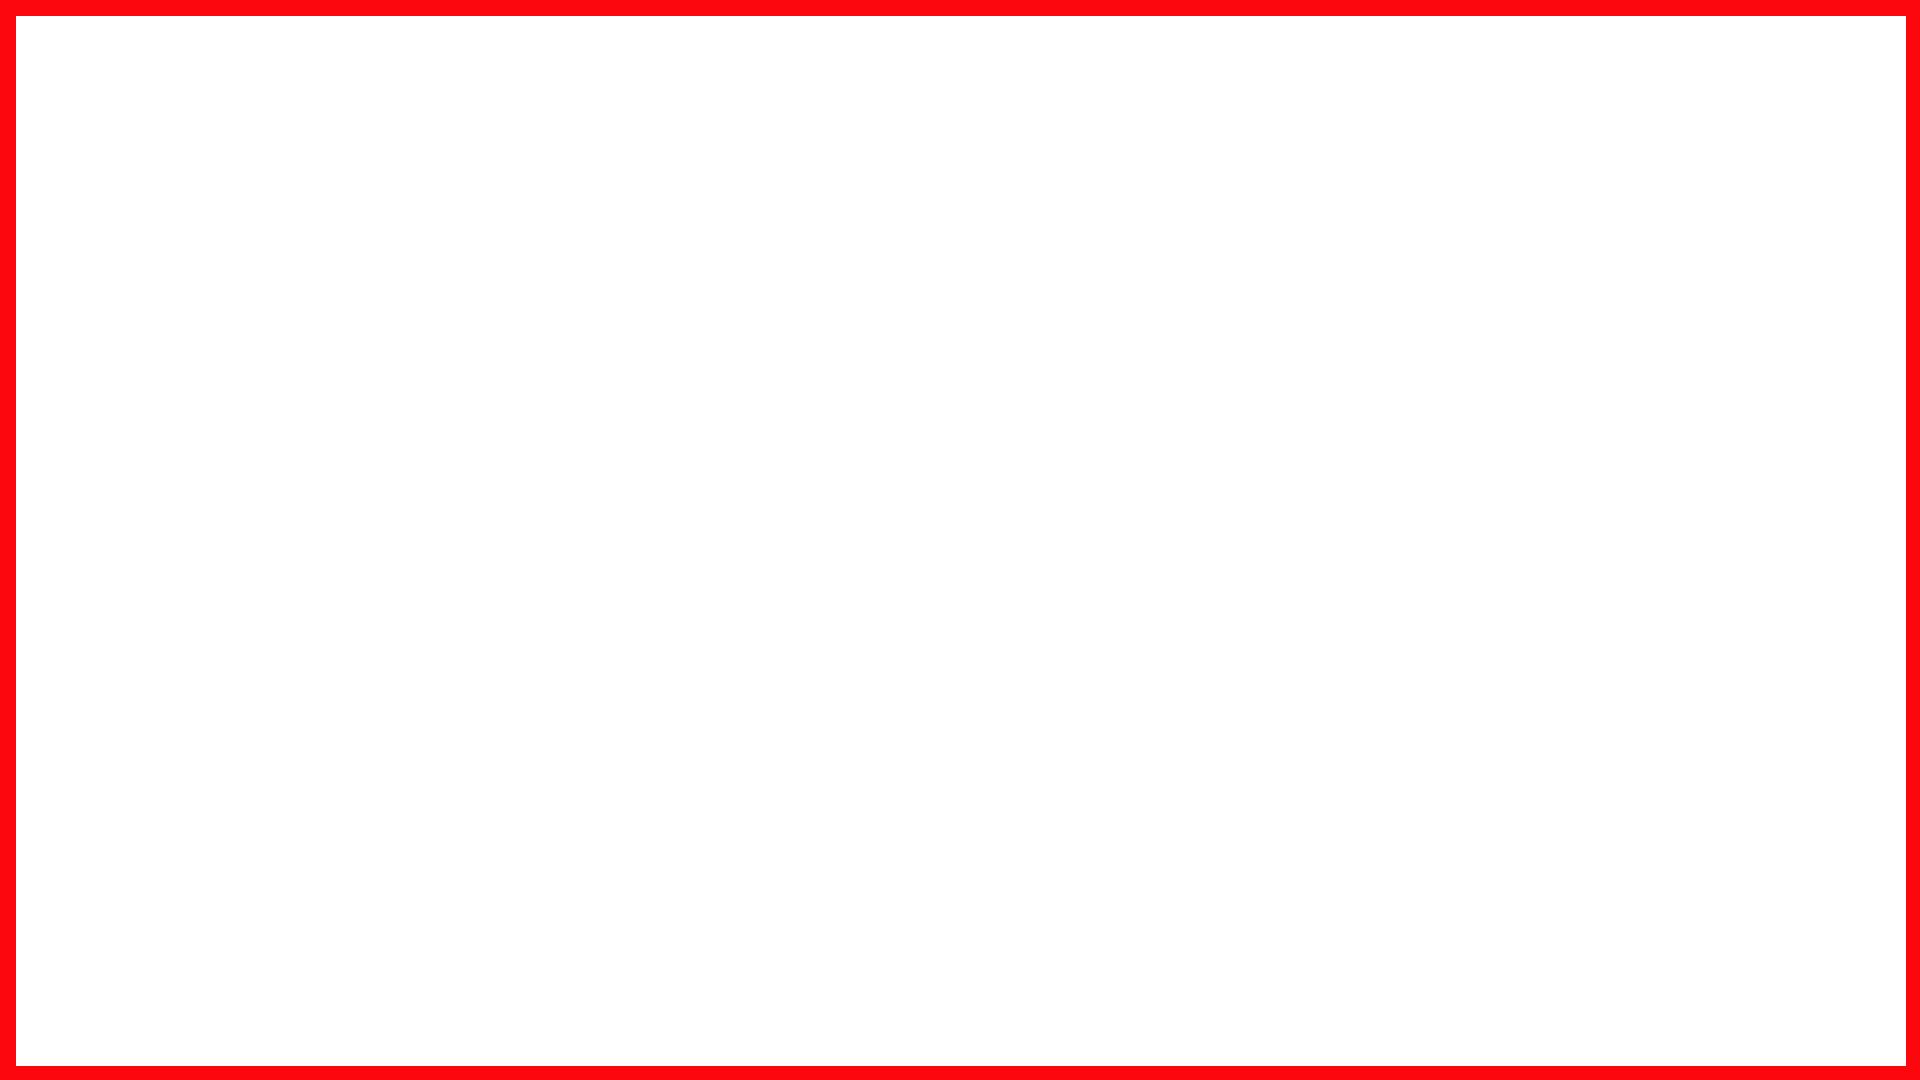 Keep of image with. Red border png